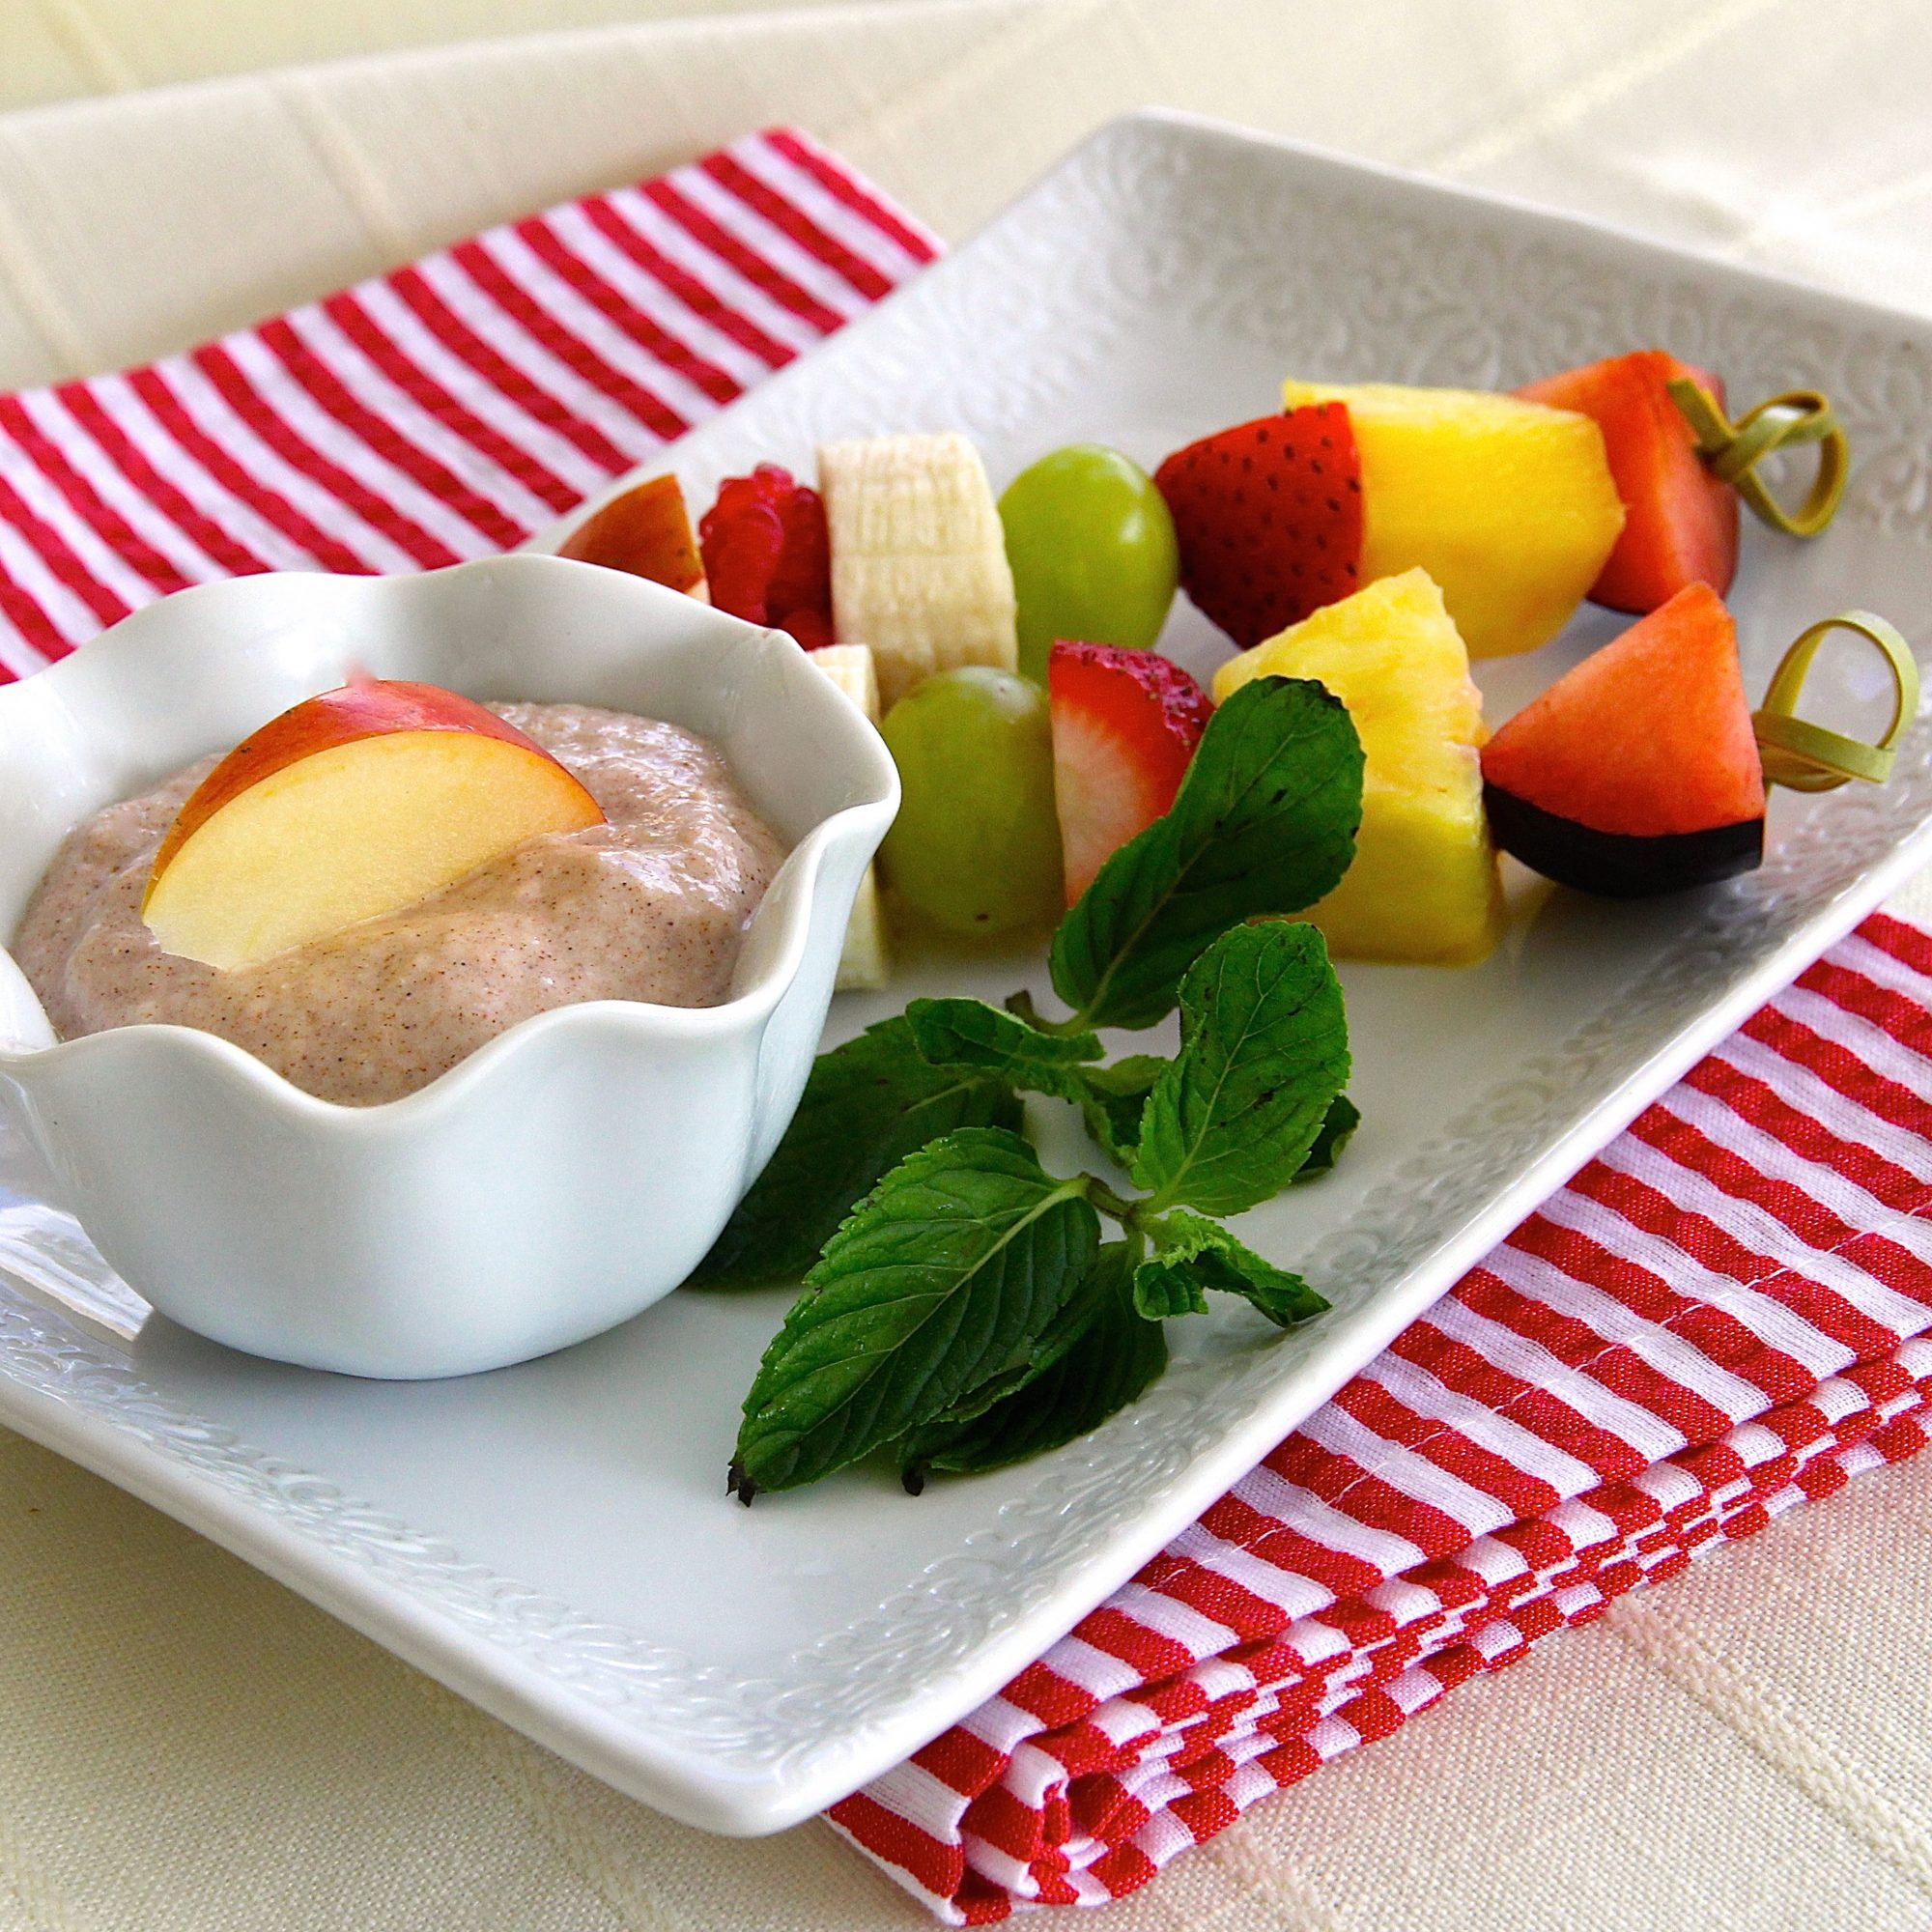 1874336-Fruit-Skewers-with-Apple-Cinnamon-Dipping-Sauce-photo-by-lutzflcat.jpg